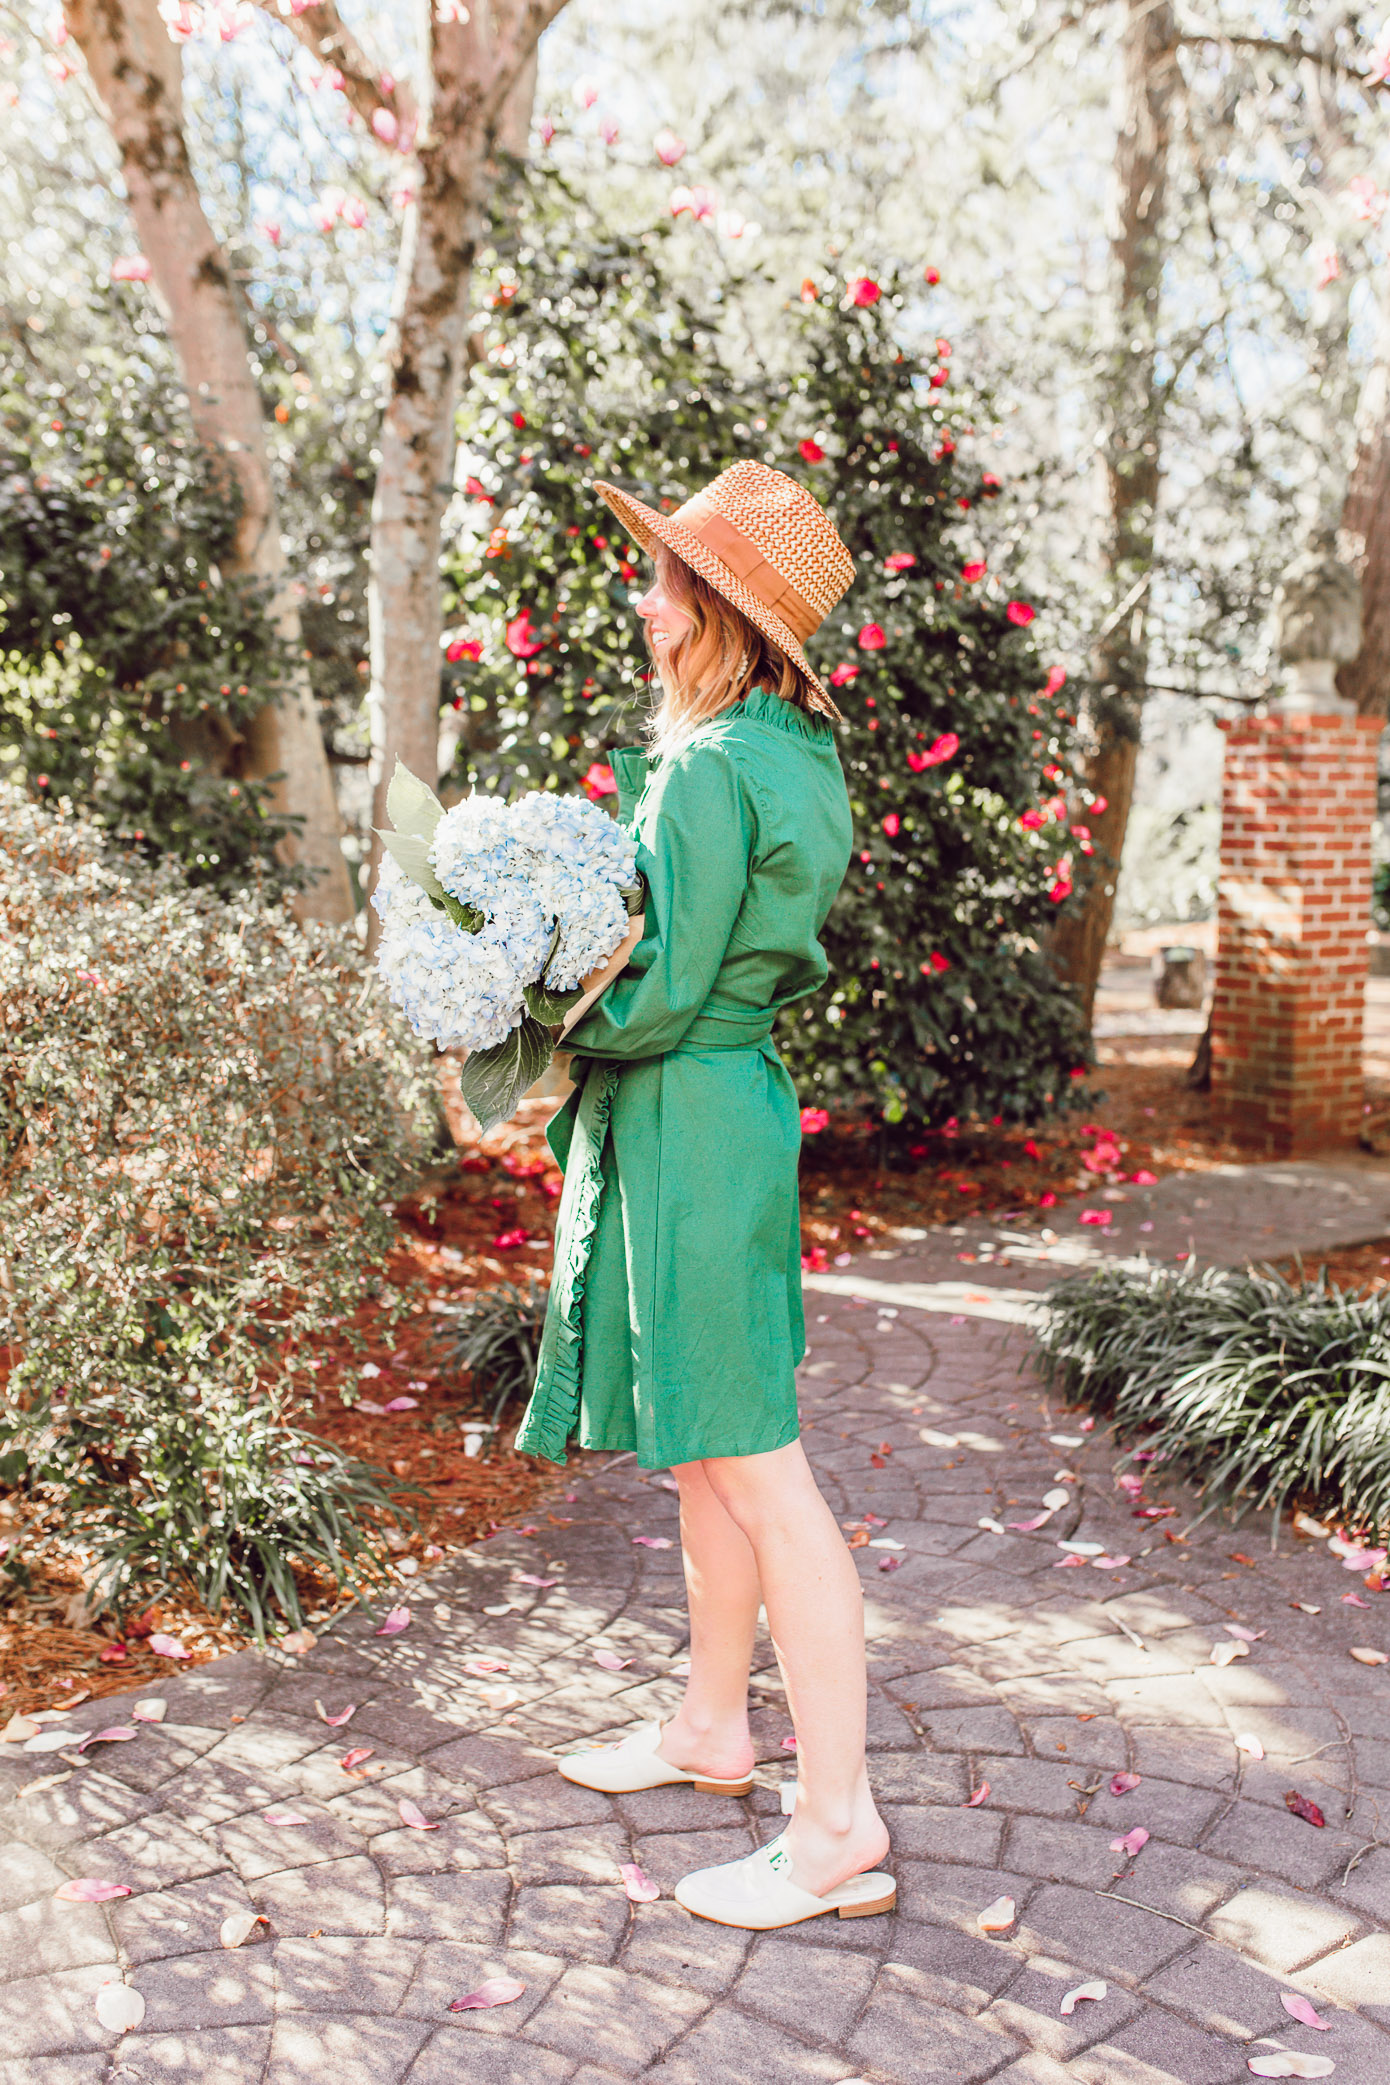 Laura Leigh of Louella Reese shares her favorite spring purchases of spring 2019 including the best straw hat under $50